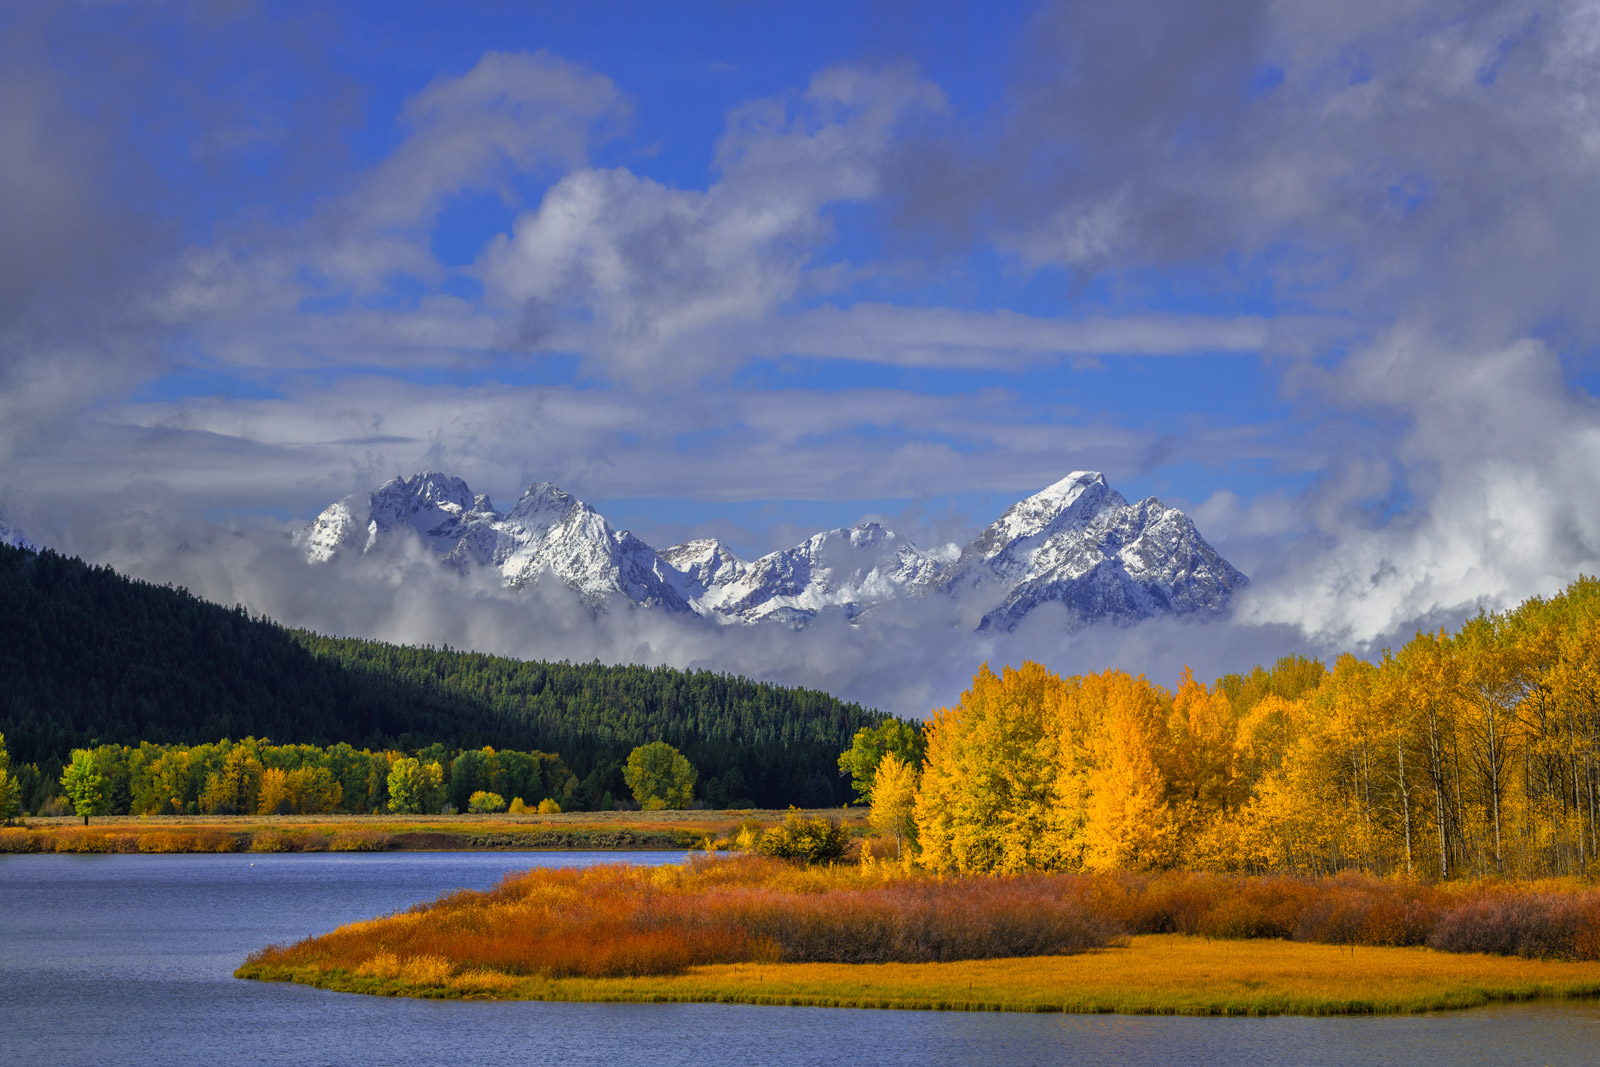 Wyoming, Grand Teton, National Park, Moran, Mountains, Snake River, Fall Colors, Fall, Snowstorm, limited edition, photograph, fine art, landscape. oxbow bend, photo